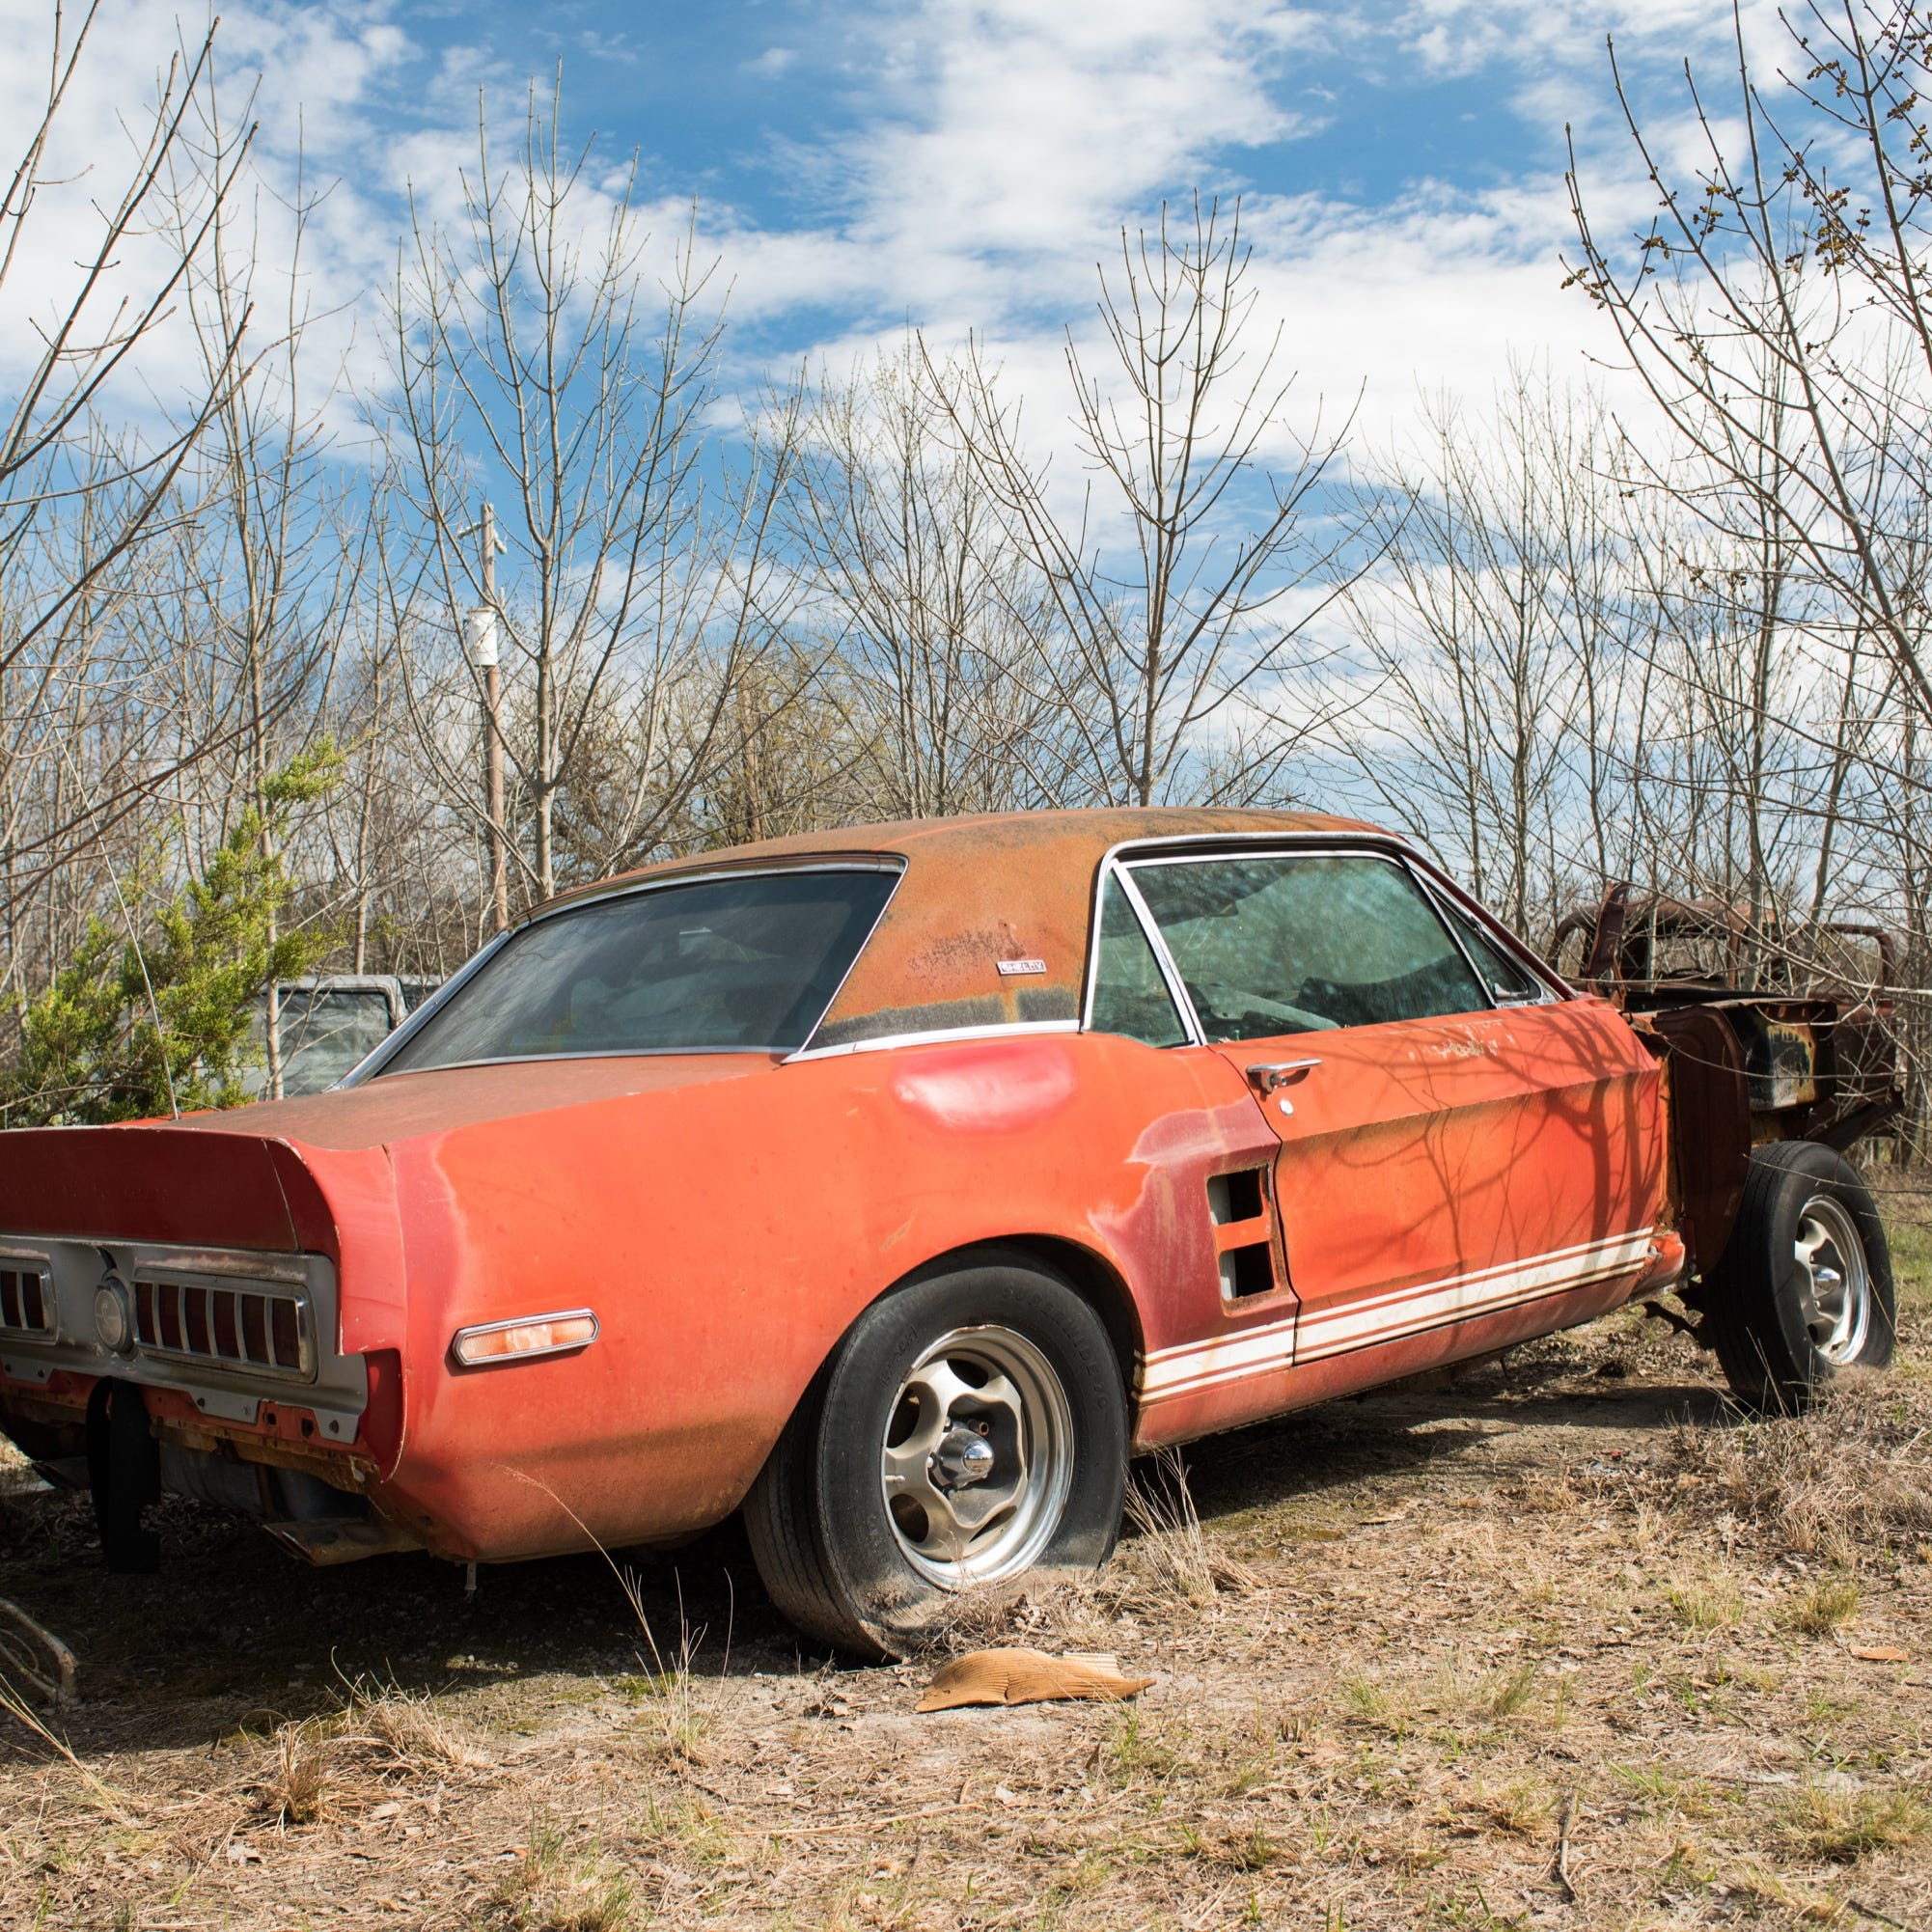 1st Mustang Shelby GT 500 found but mystery still surrounds its history